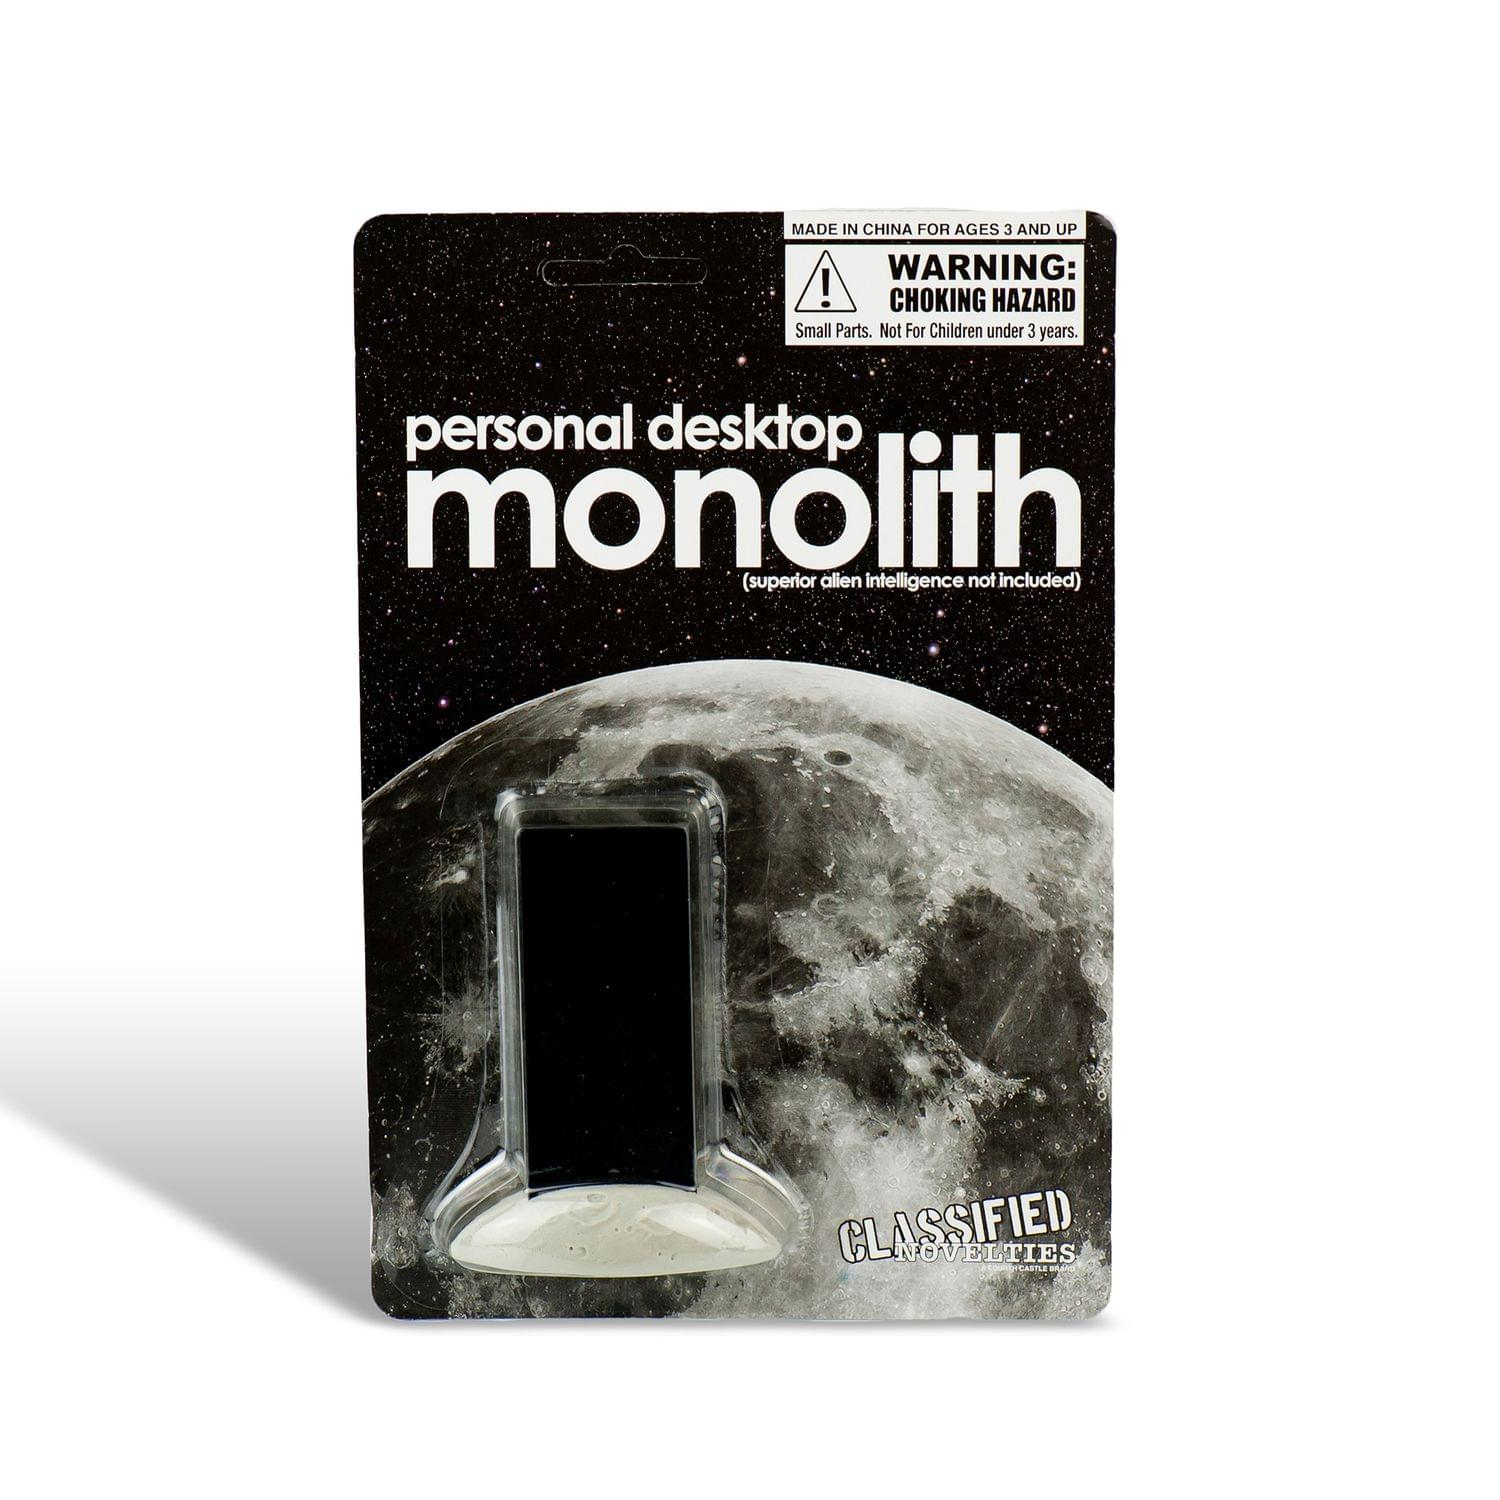 Science Fiction Collectible 2001 A Space Odyssey Monolith Action Figure by Toynk